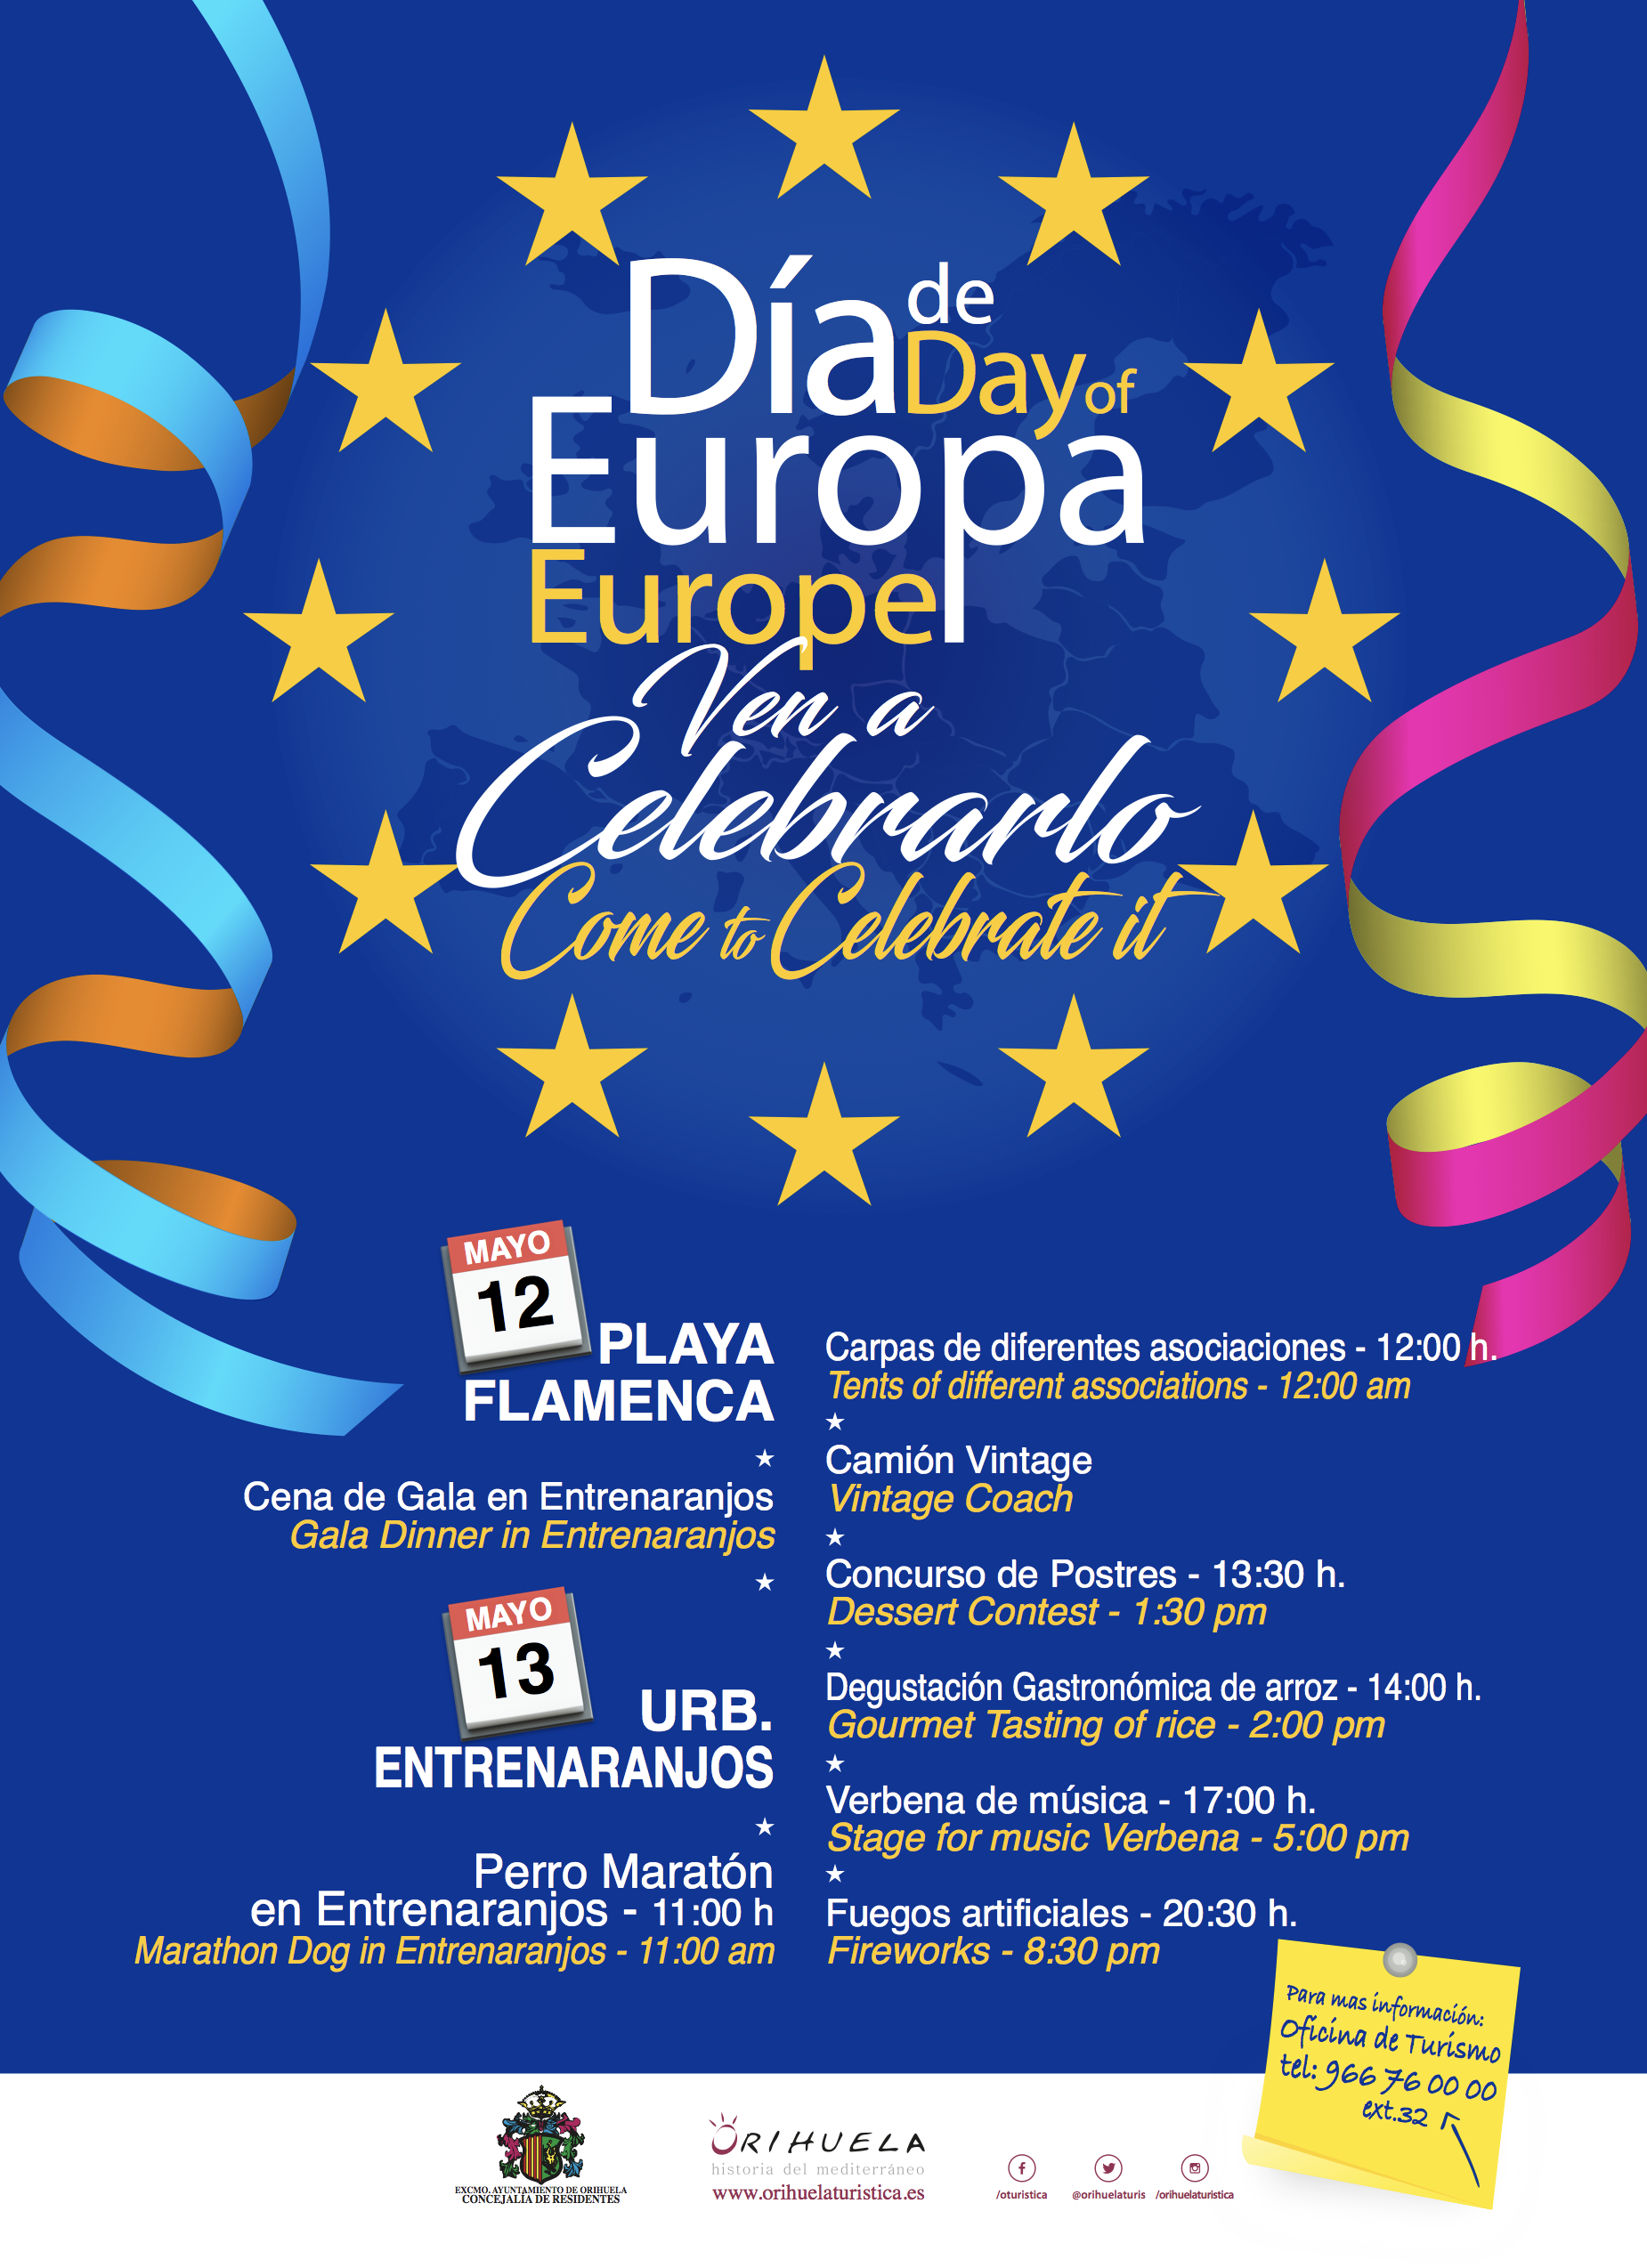 Dia de Europa to be celebrated this weekend at Flamenca Beach and Entre Naranjos